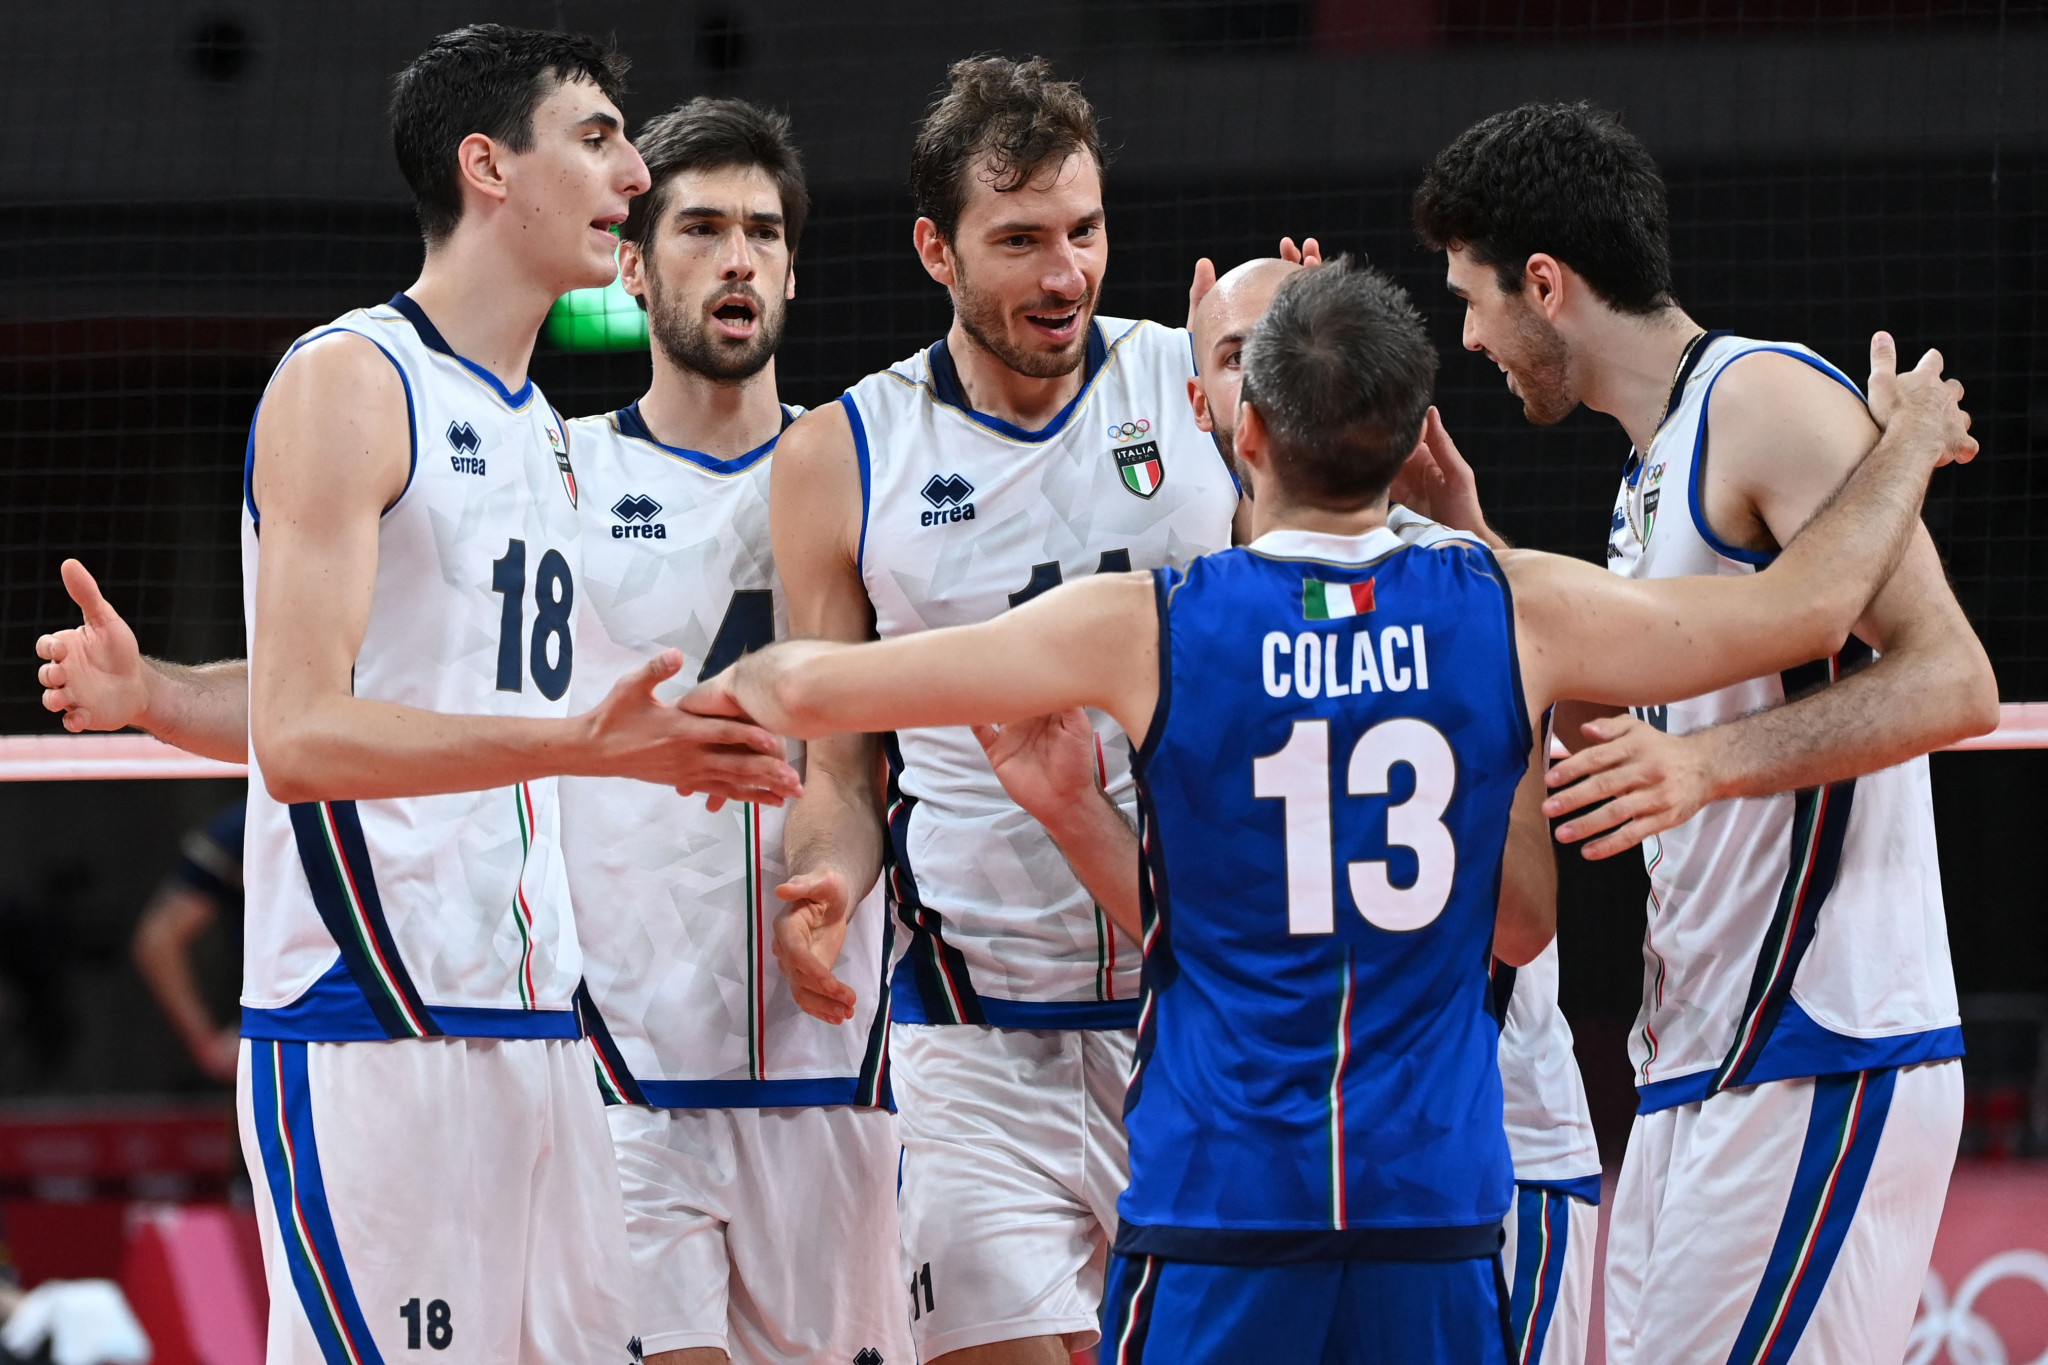 Italy have been men's European volleyball champions six times, but not since 2005 ©Getty Images